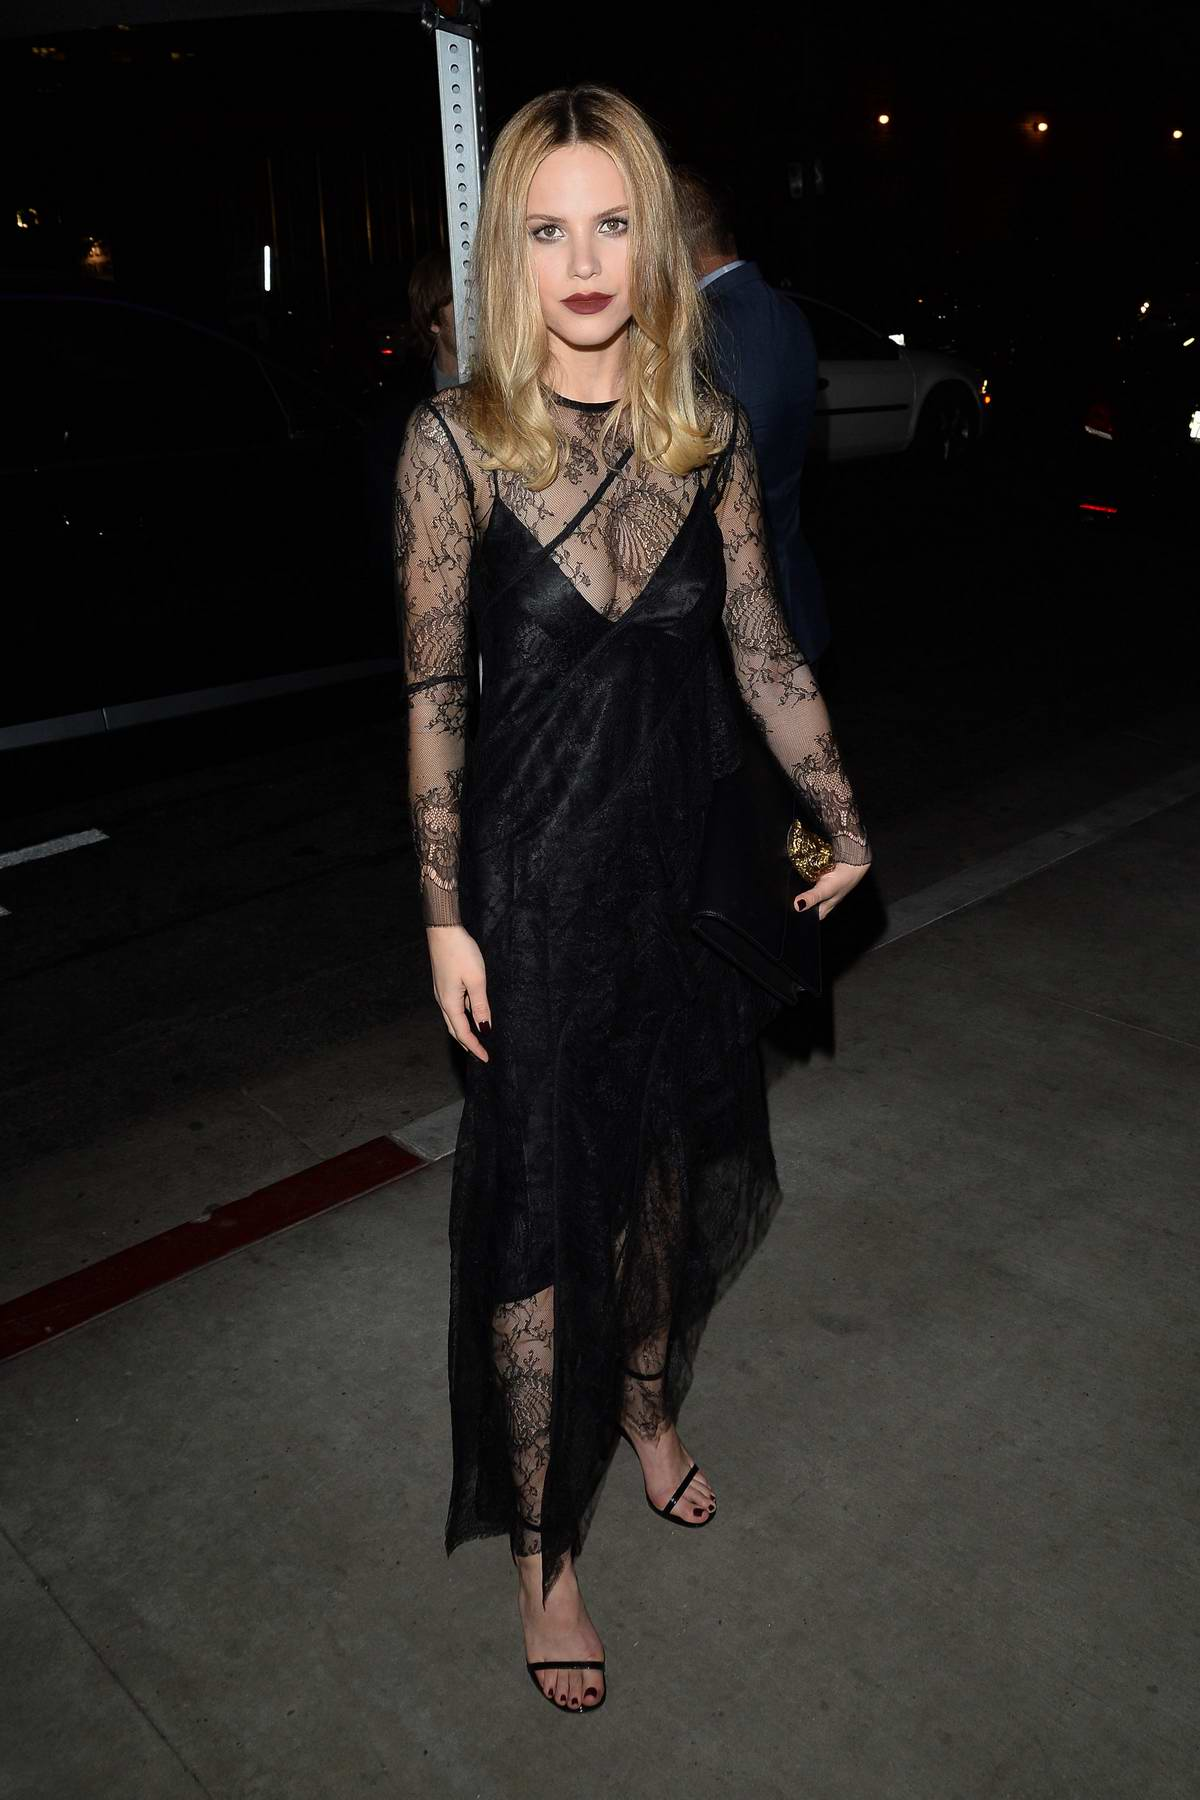 Halston Sage arrives to a charity event in Hollywood, Los Angeles